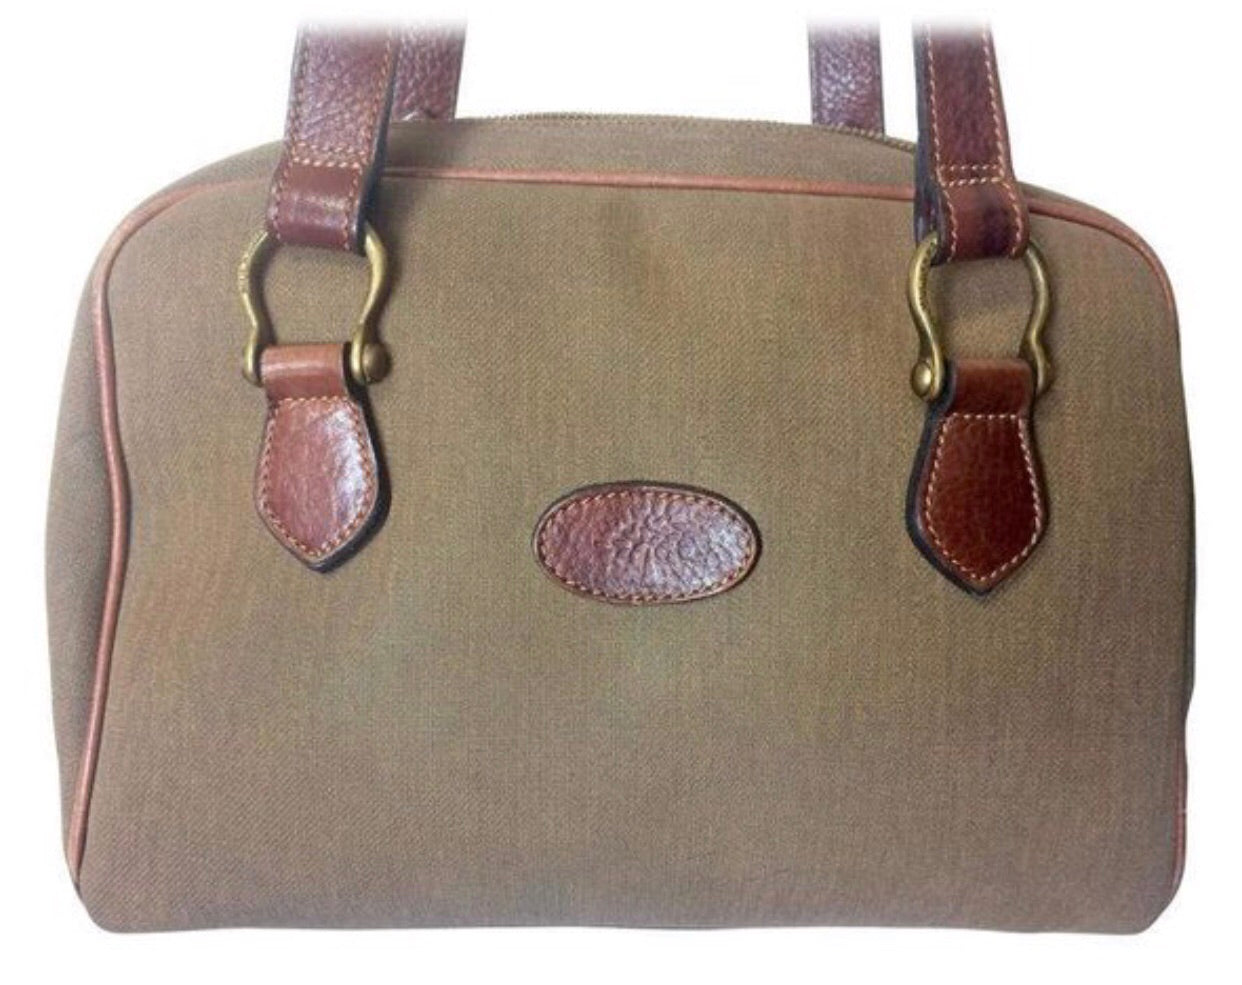 5dfacbb9d30 Vintage Mulberry khaki shoulder bag with fabric and brown leather mix  trimmings and handles. Unisex